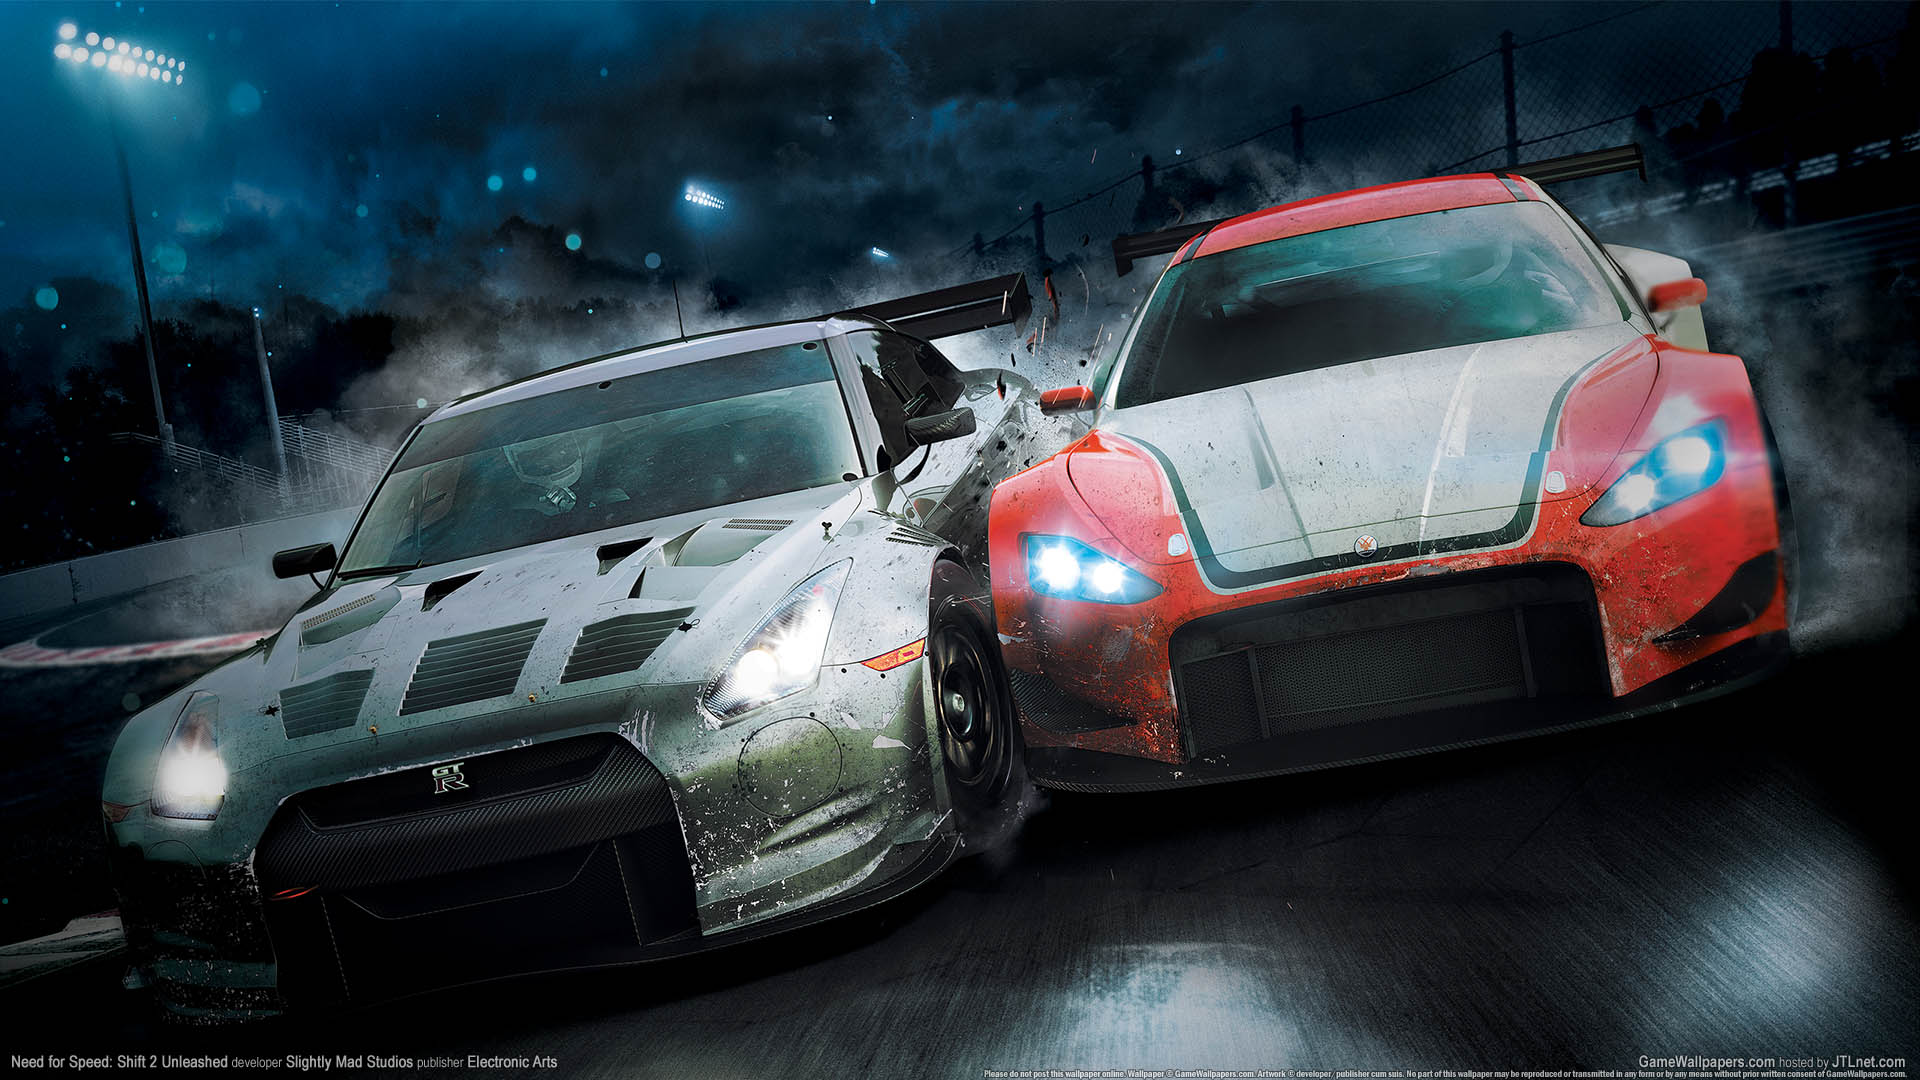 Need for Speed: Shift 2 Unleashed achtergrond 01 1920x1080